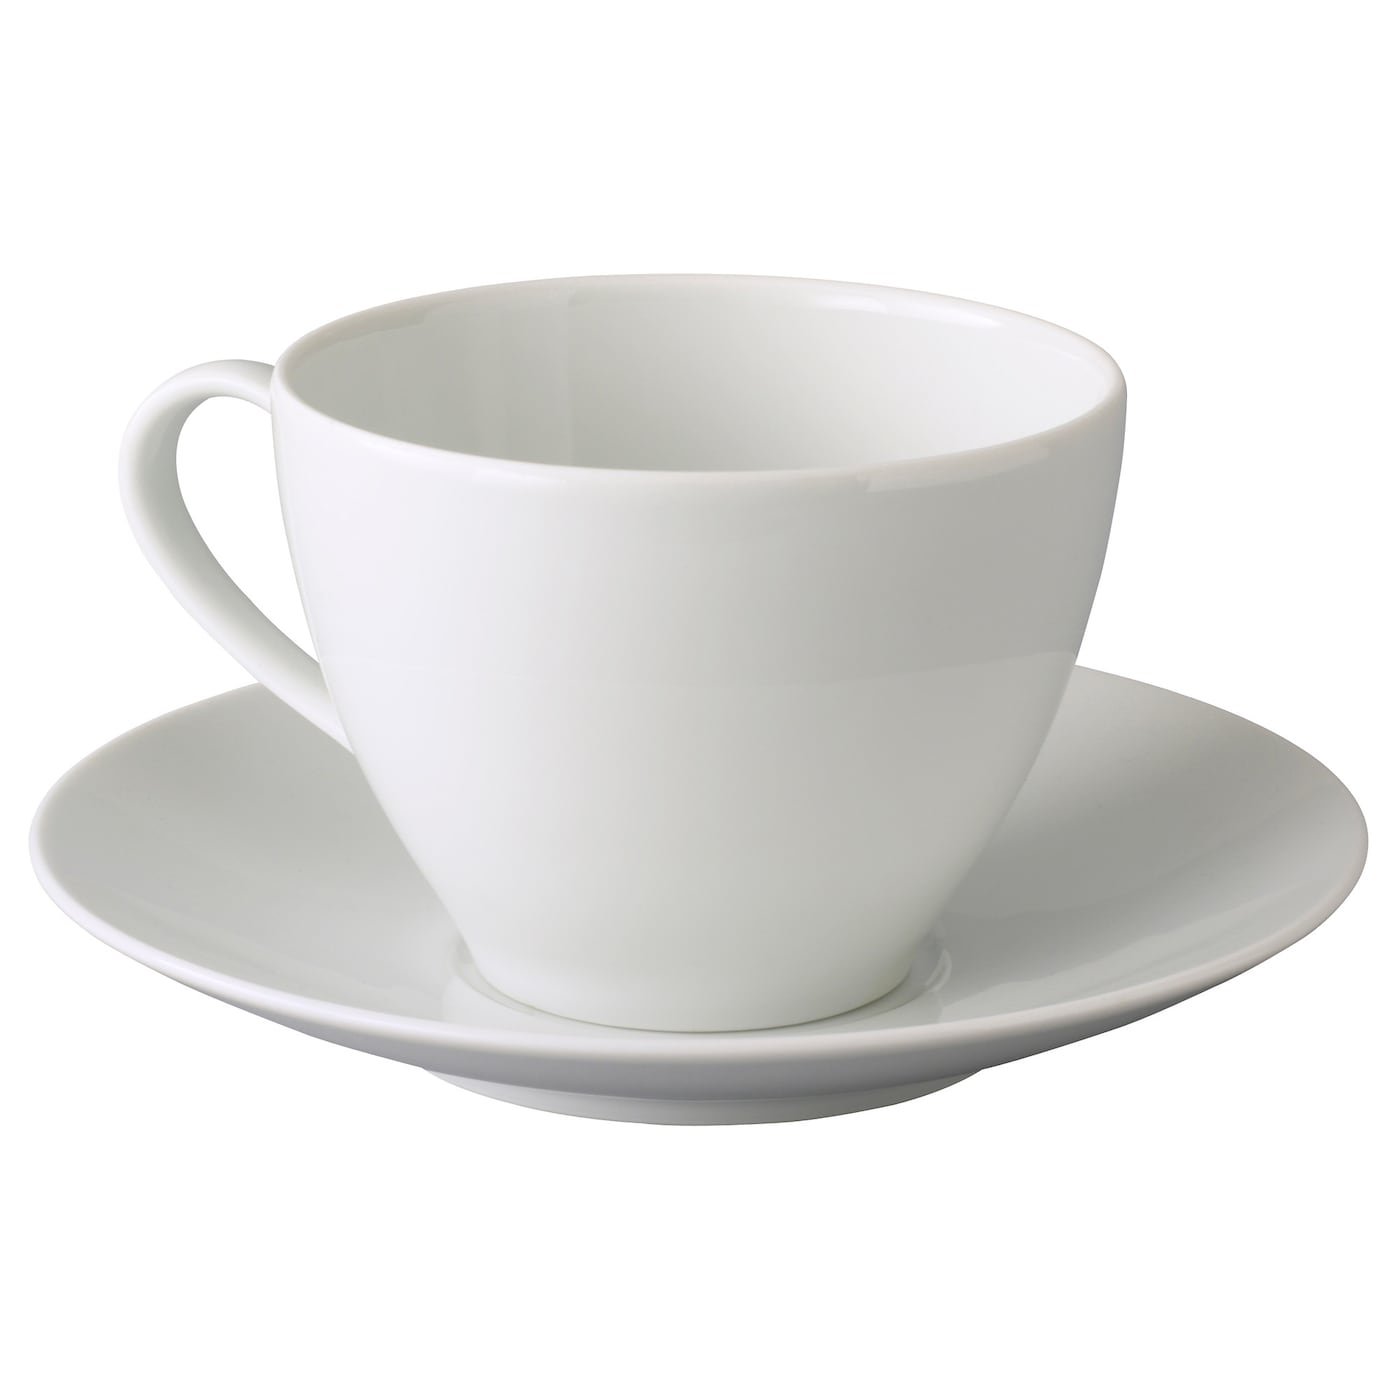 v rdera teacup with saucer white 36 cl ikea. Black Bedroom Furniture Sets. Home Design Ideas